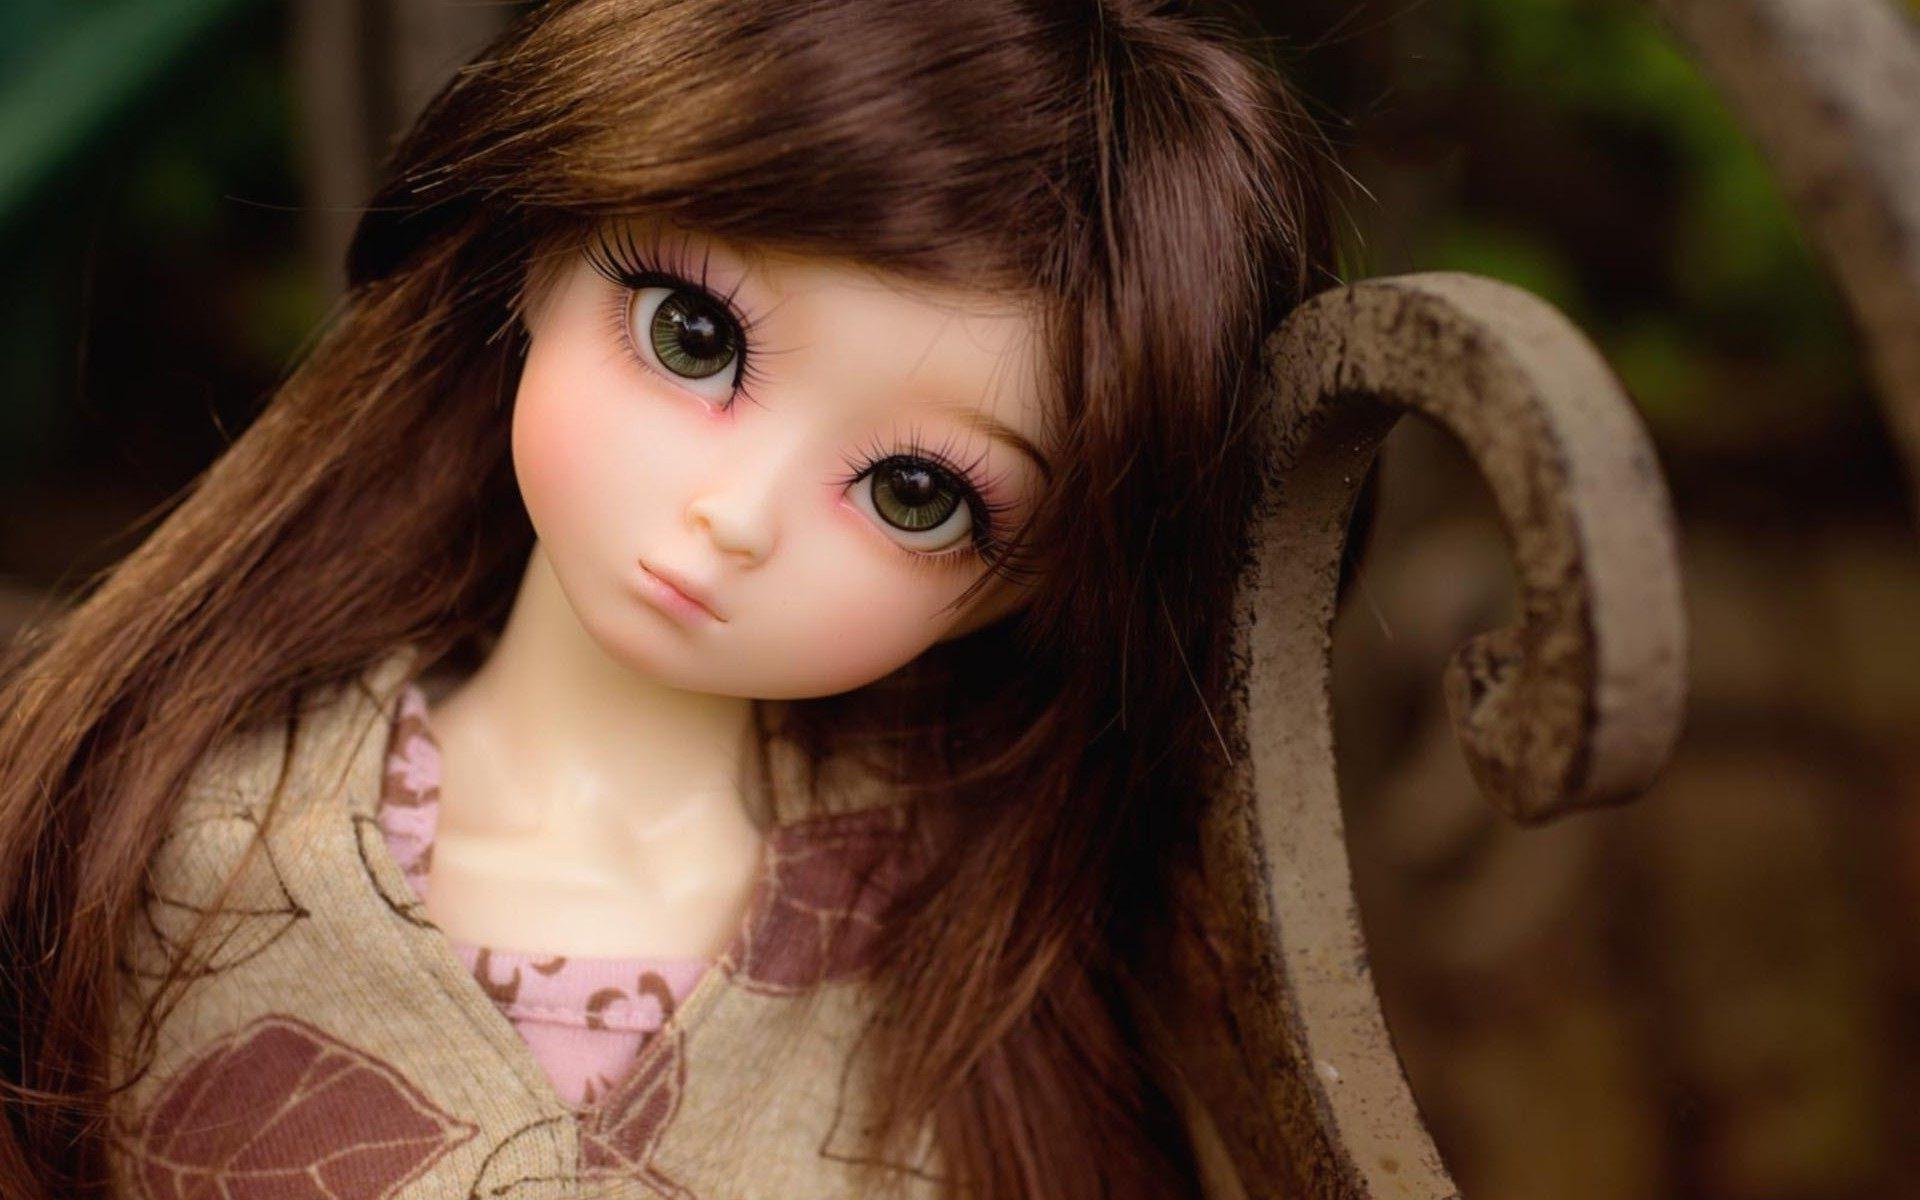 Pretty Doll Wallpapers - Wallpaper Cave